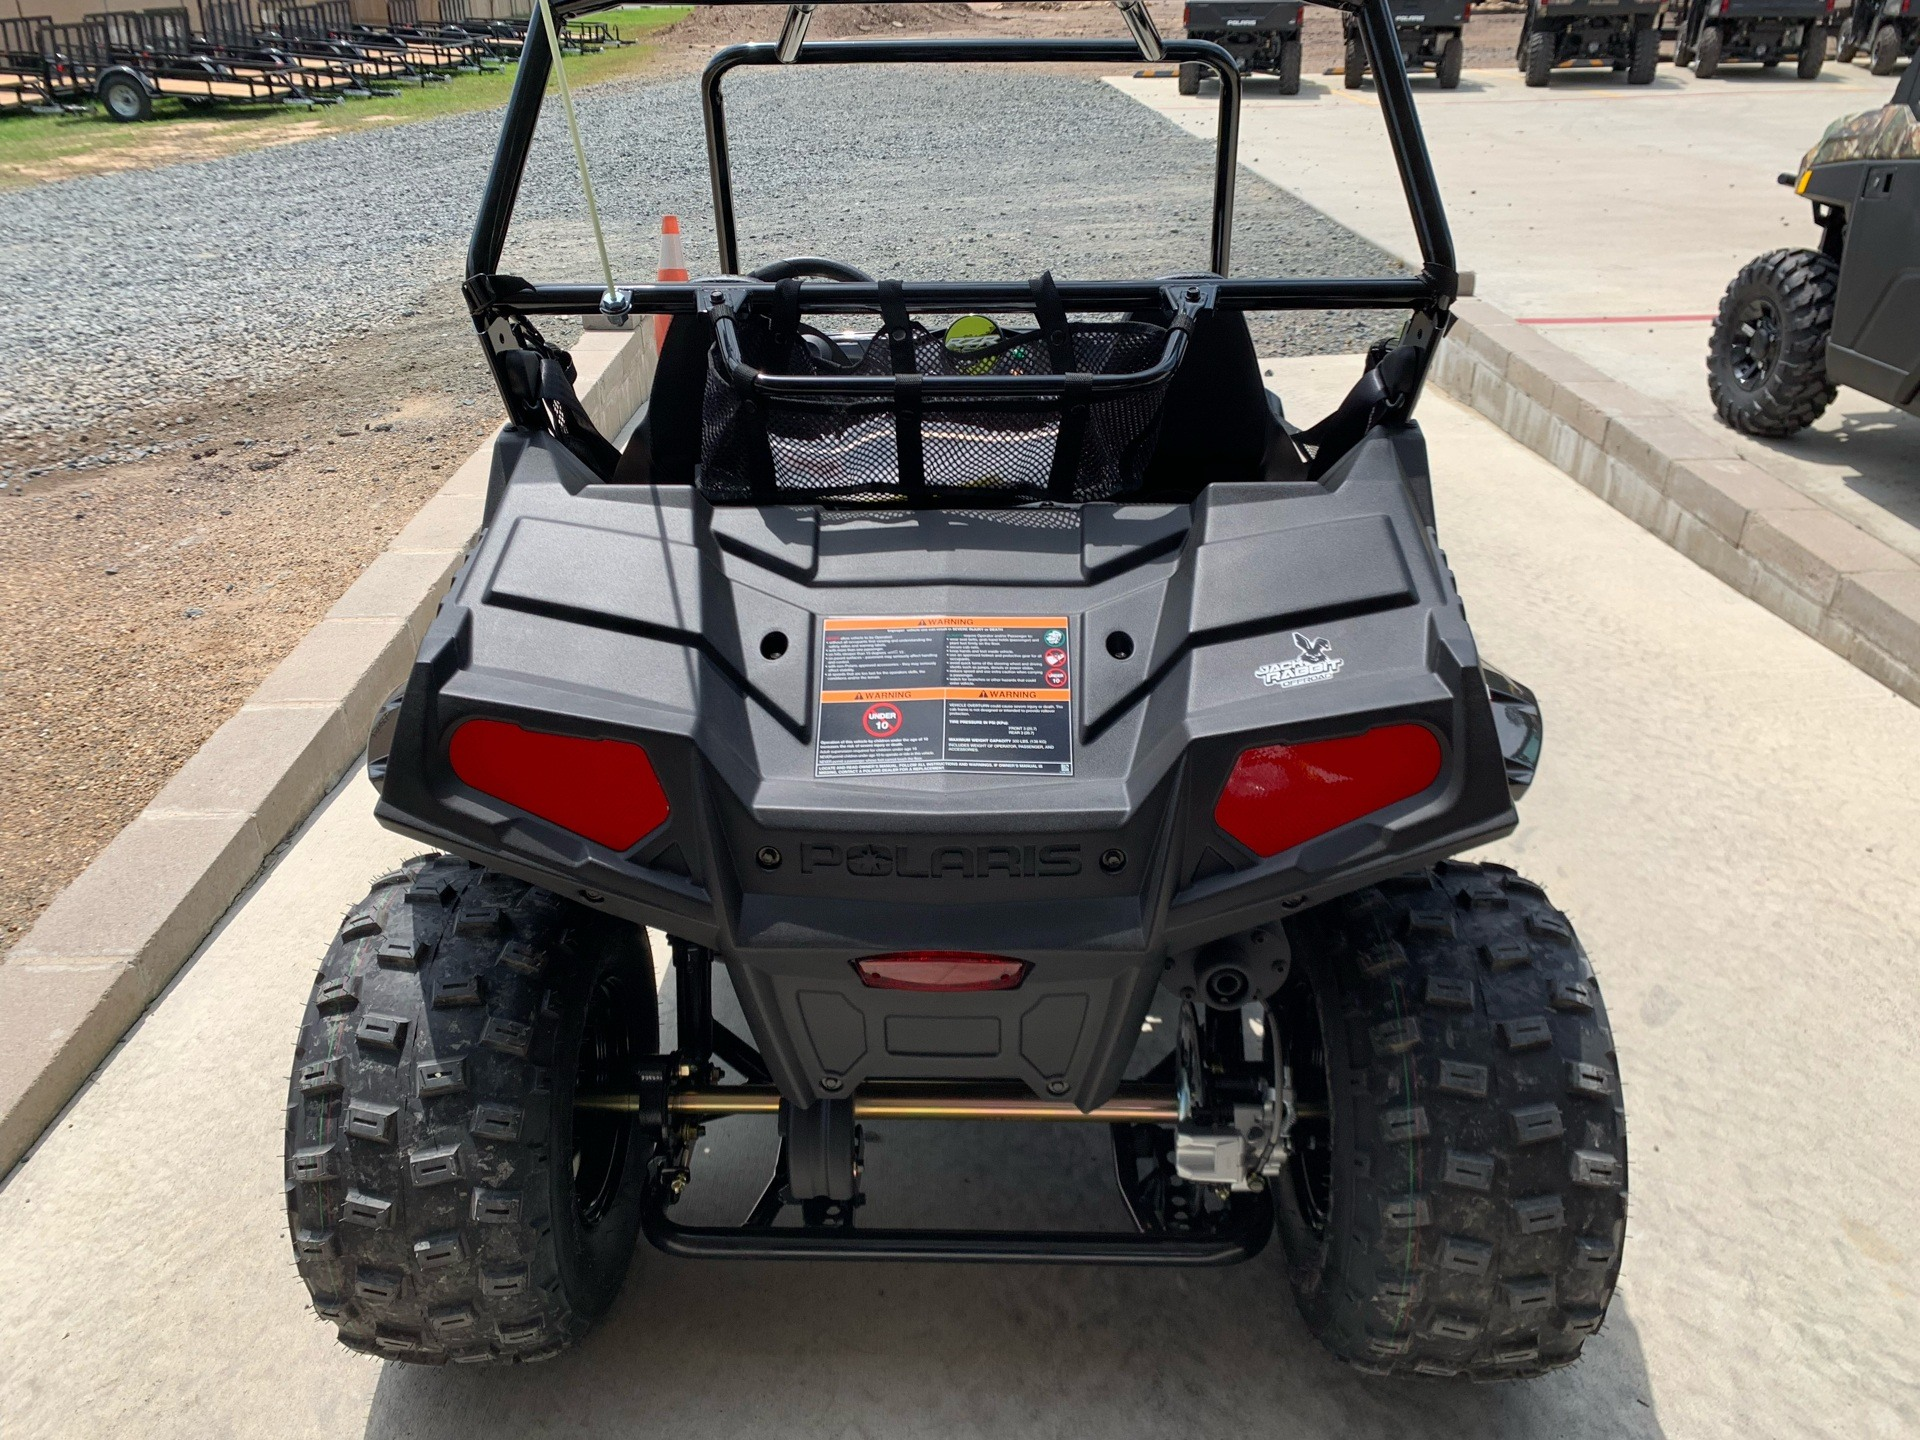 2020 Polaris RZR 170 EFI in Marshall, Texas - Photo 4